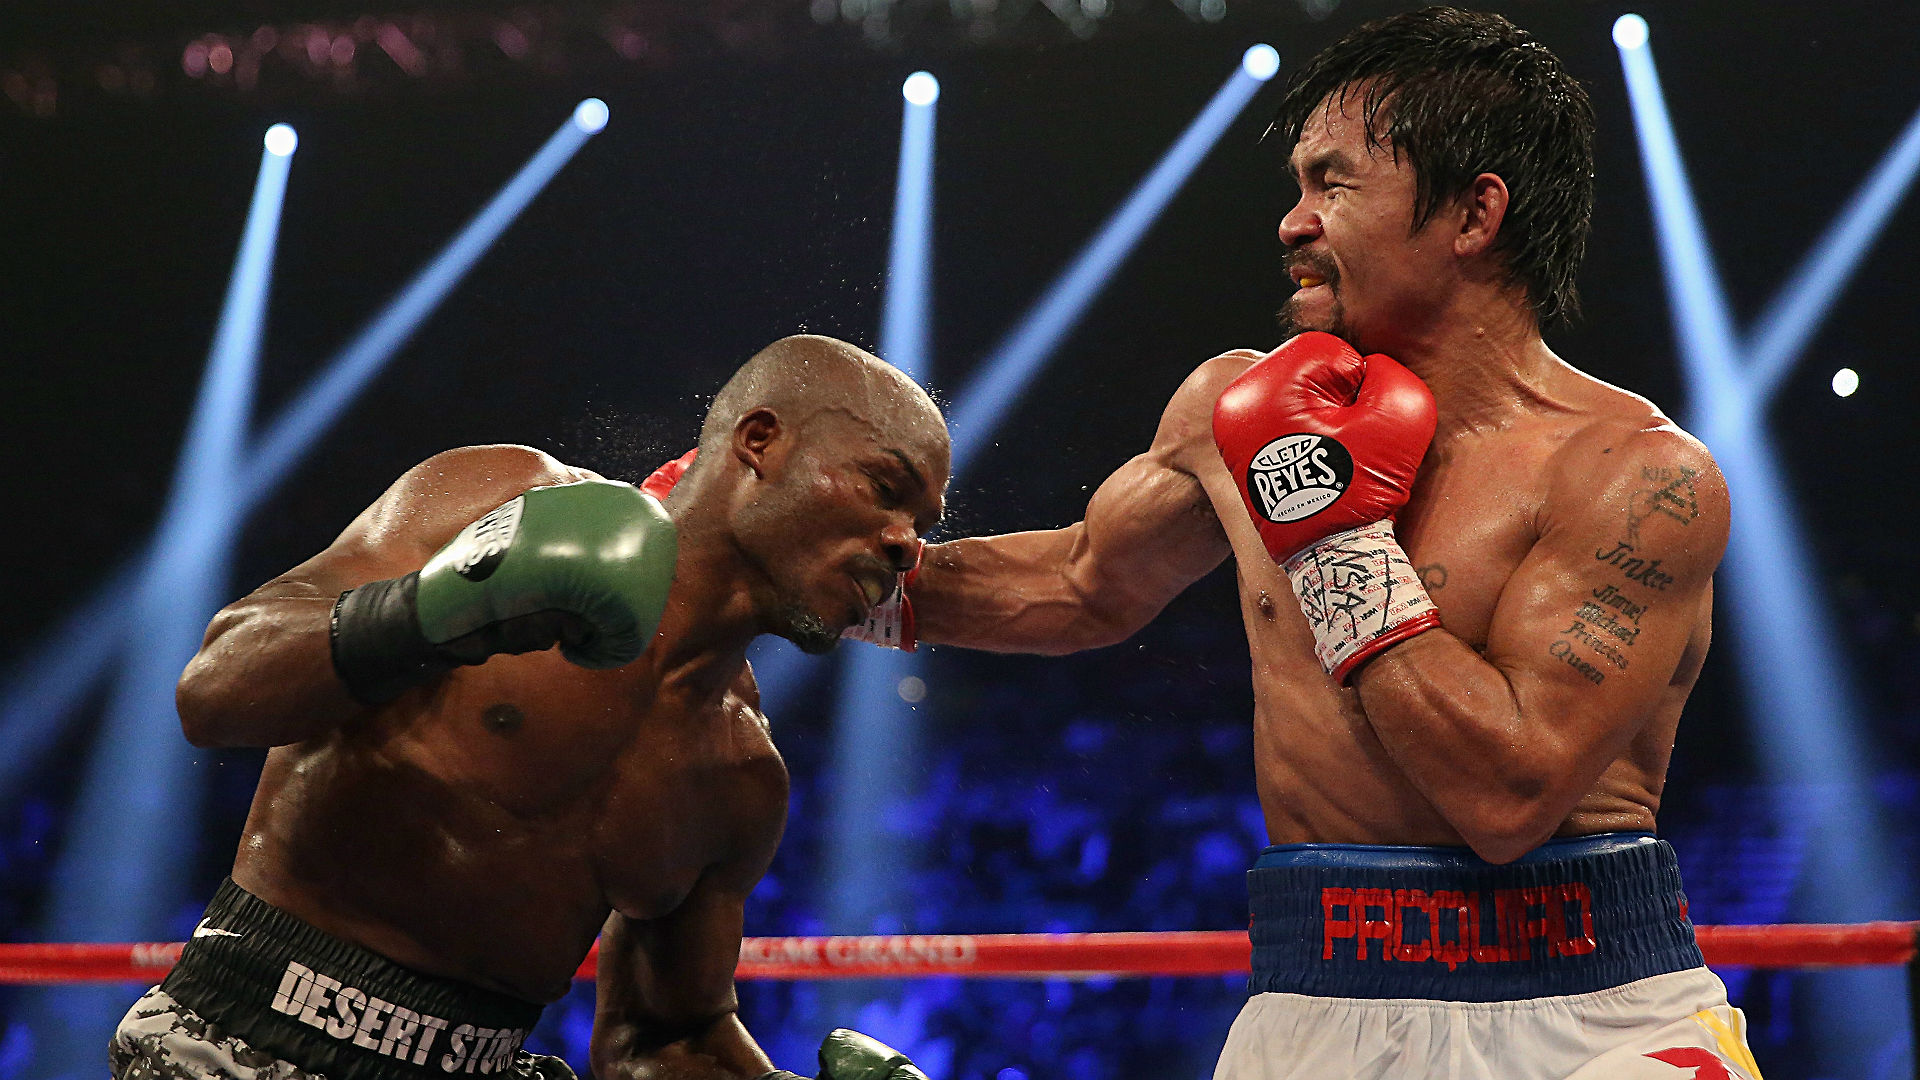 Pacquiao vs. Algieri odds and pick – Looking for value in props